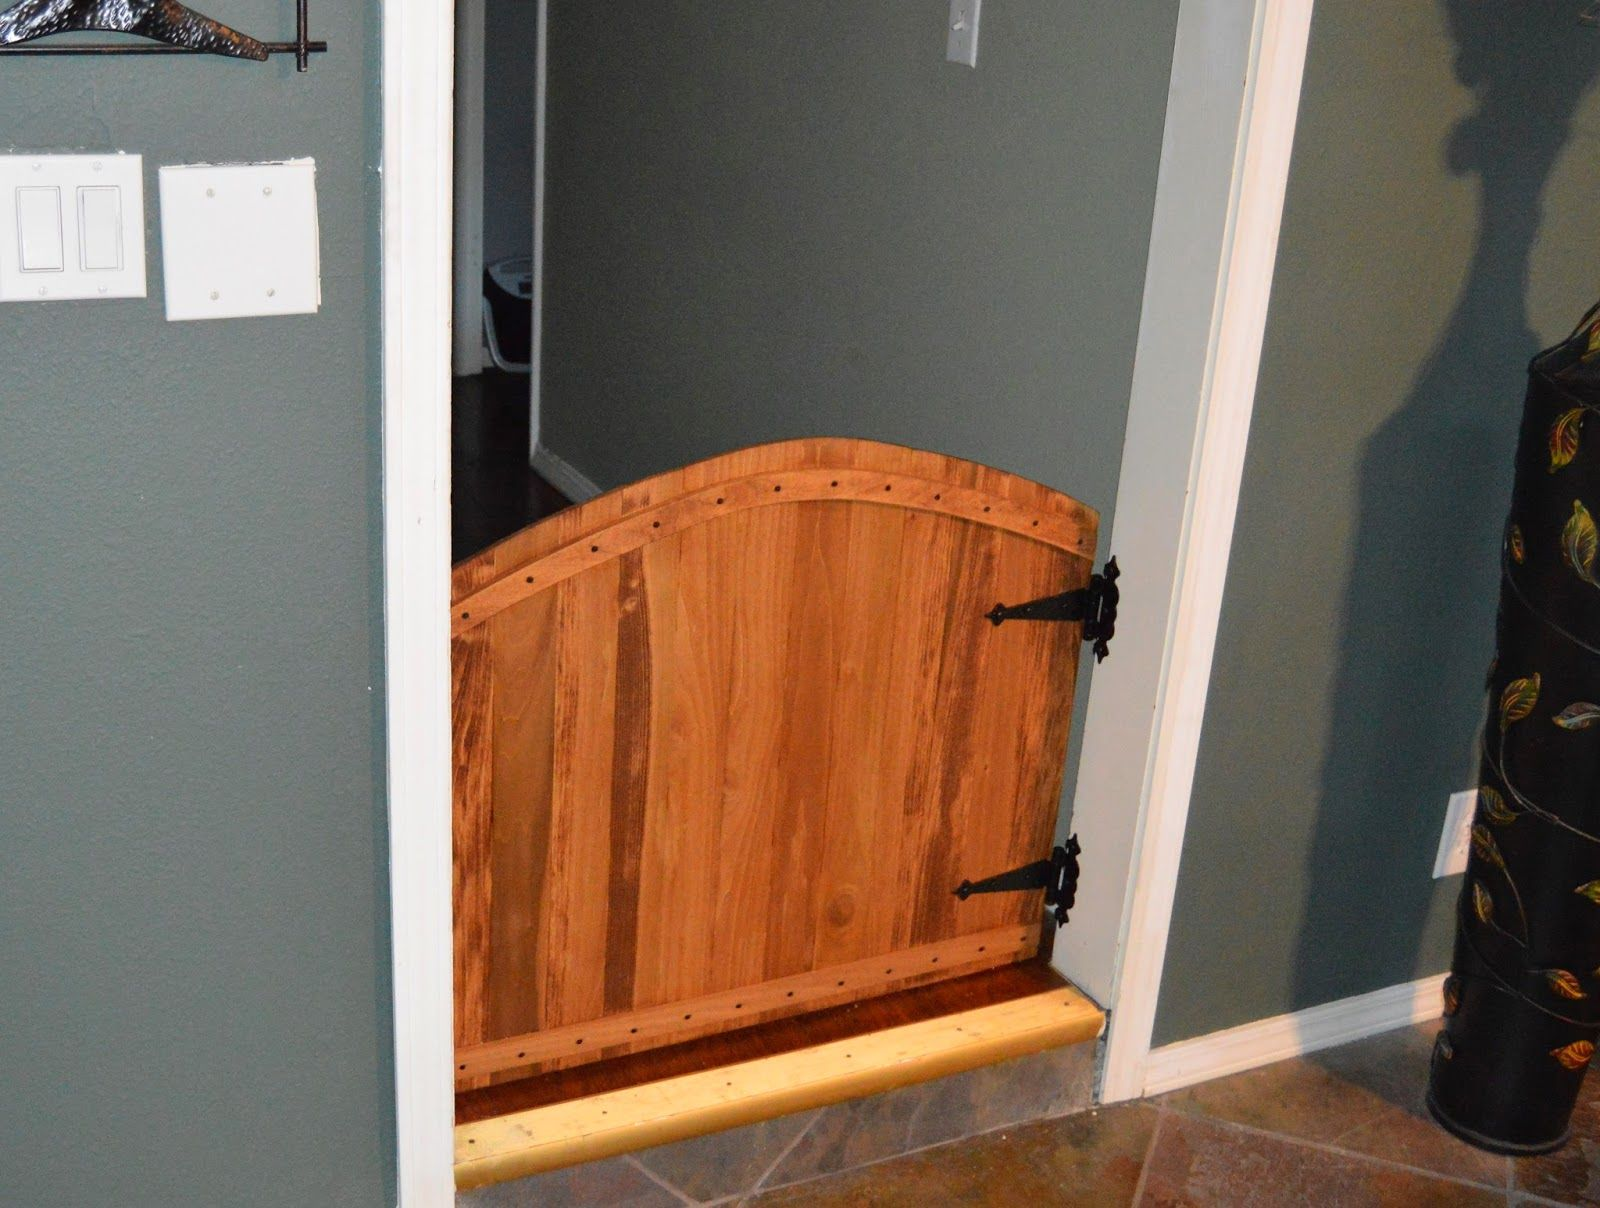 diy dog doors. DIY Doggy Door. Maybe In Basement To Keep My Pooches Out Of The Family Room Diy Dog Doors